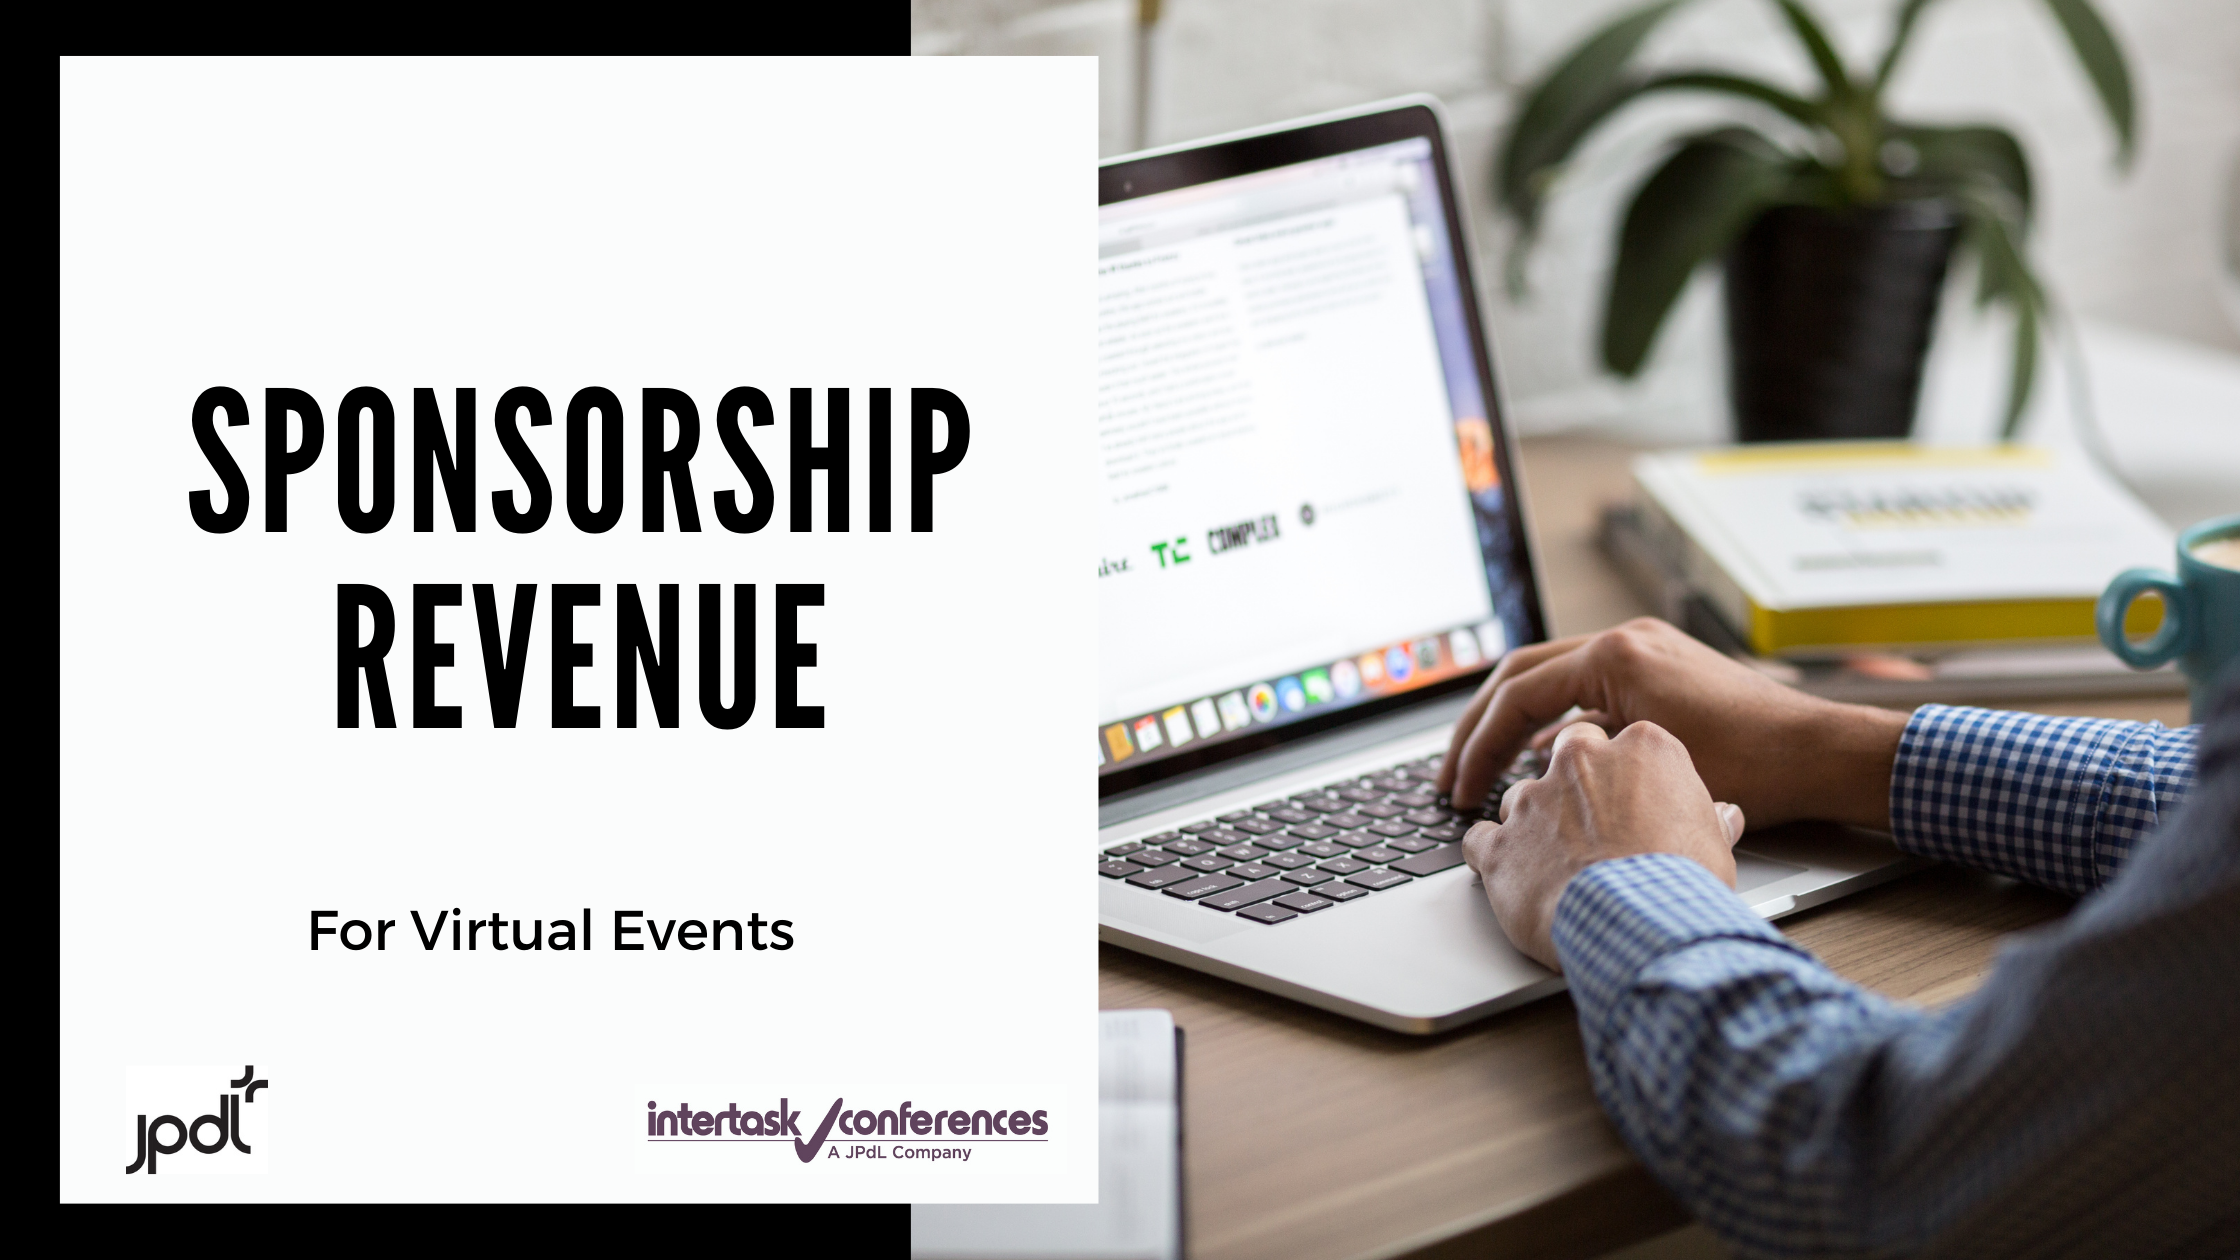 How Can Virtual Events Meet Sponsorship Revenue Targets?